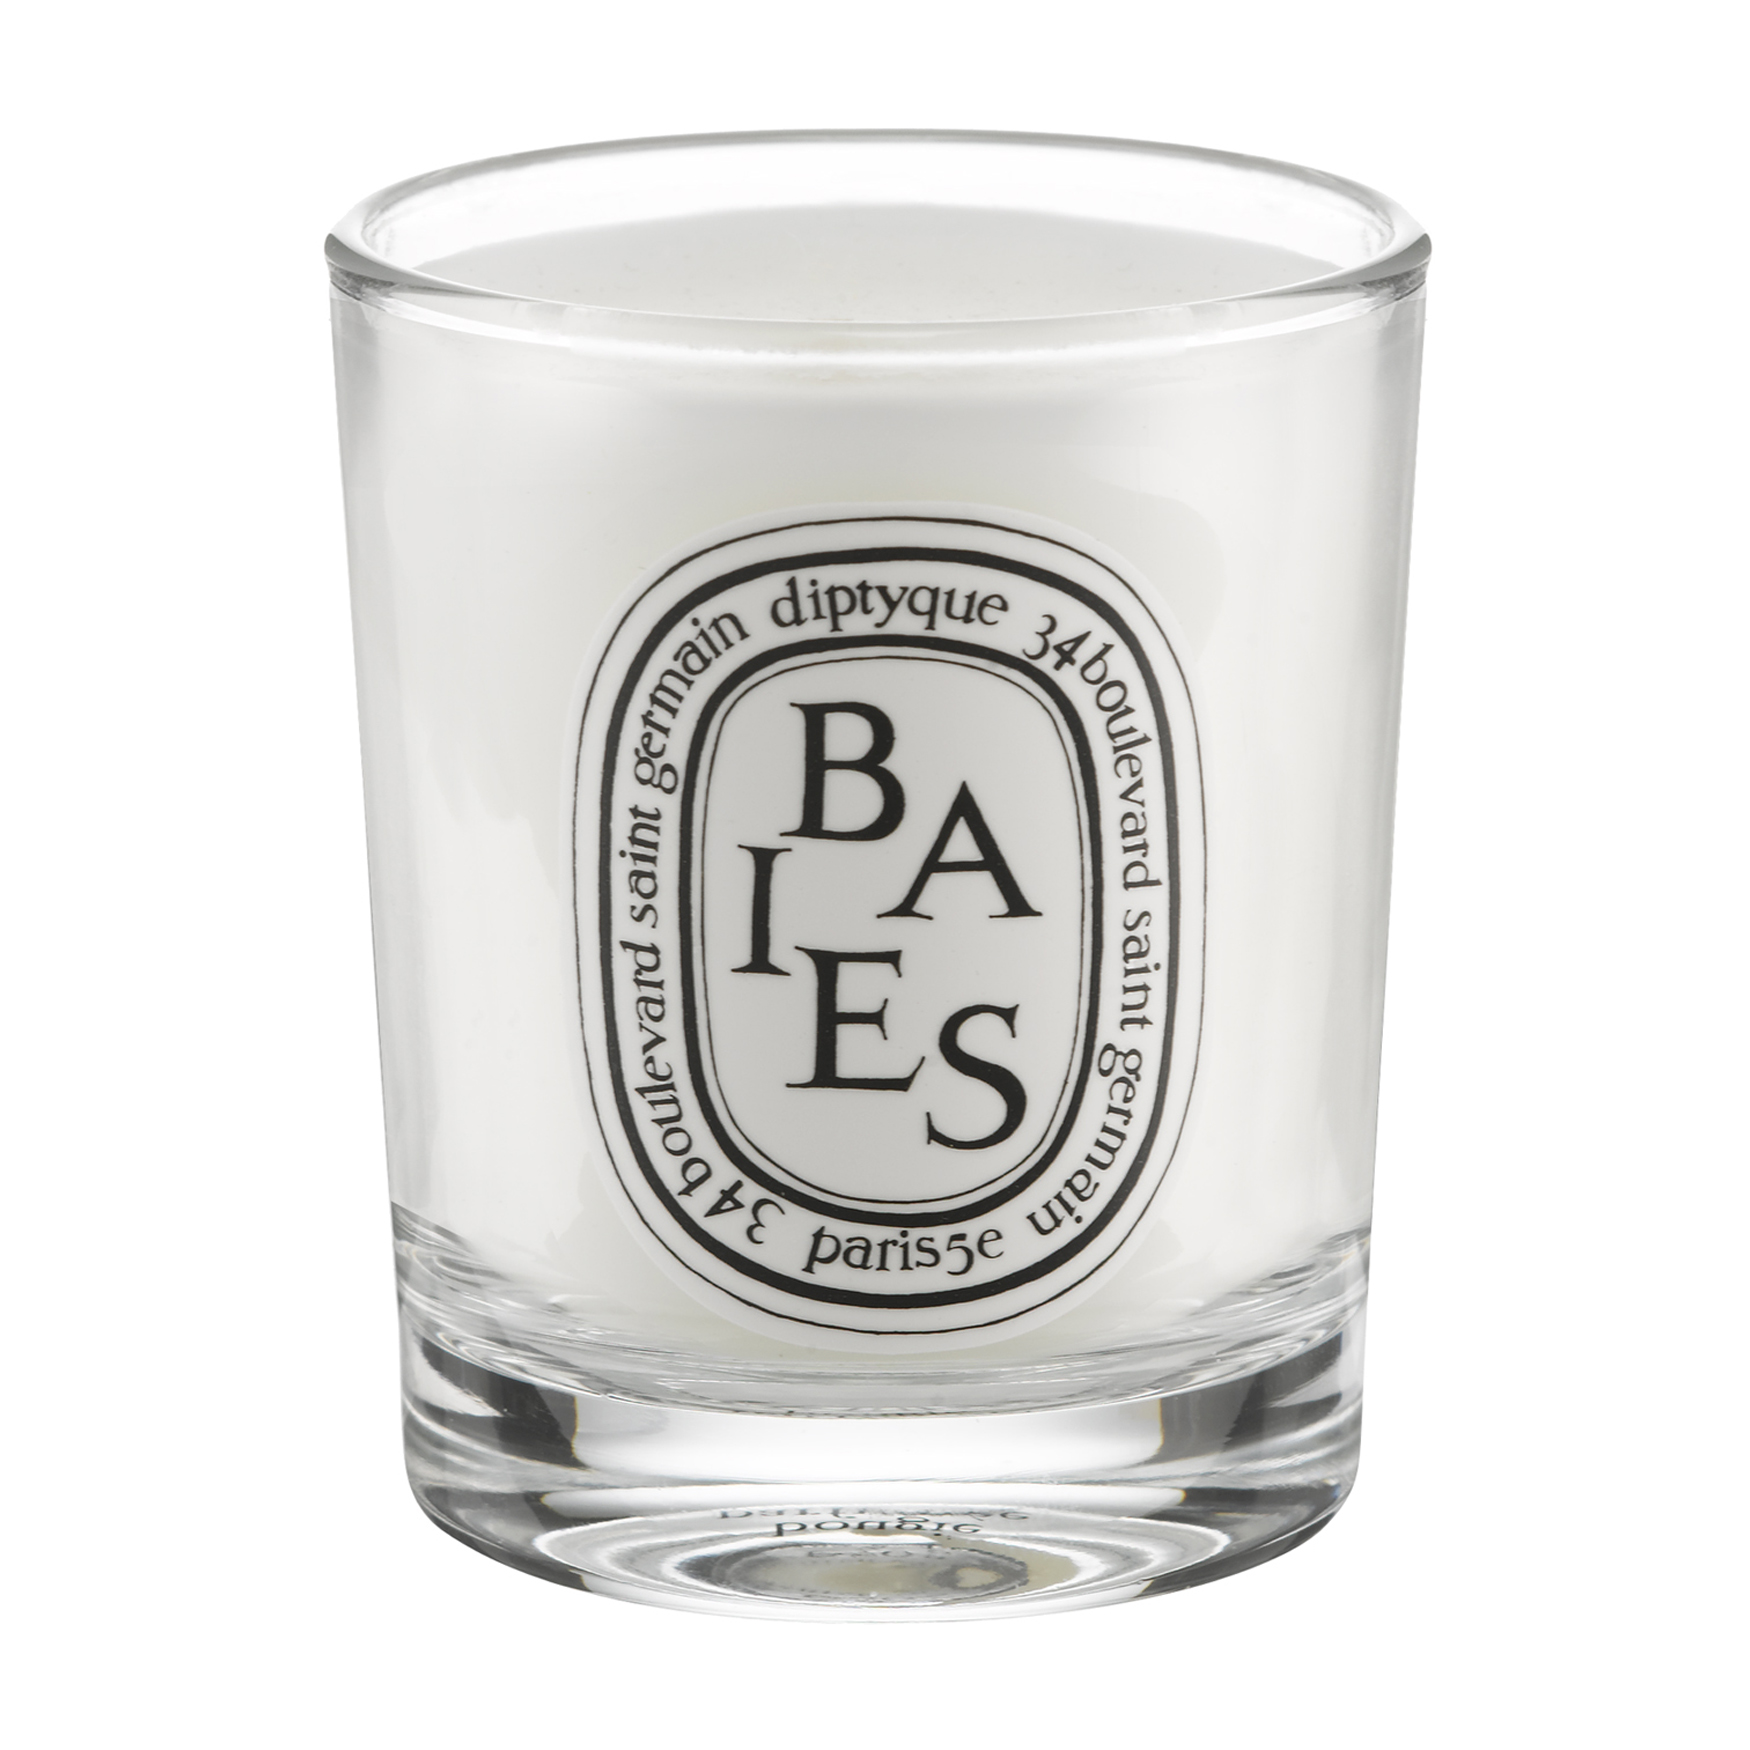 Baies Mini Candle, , large